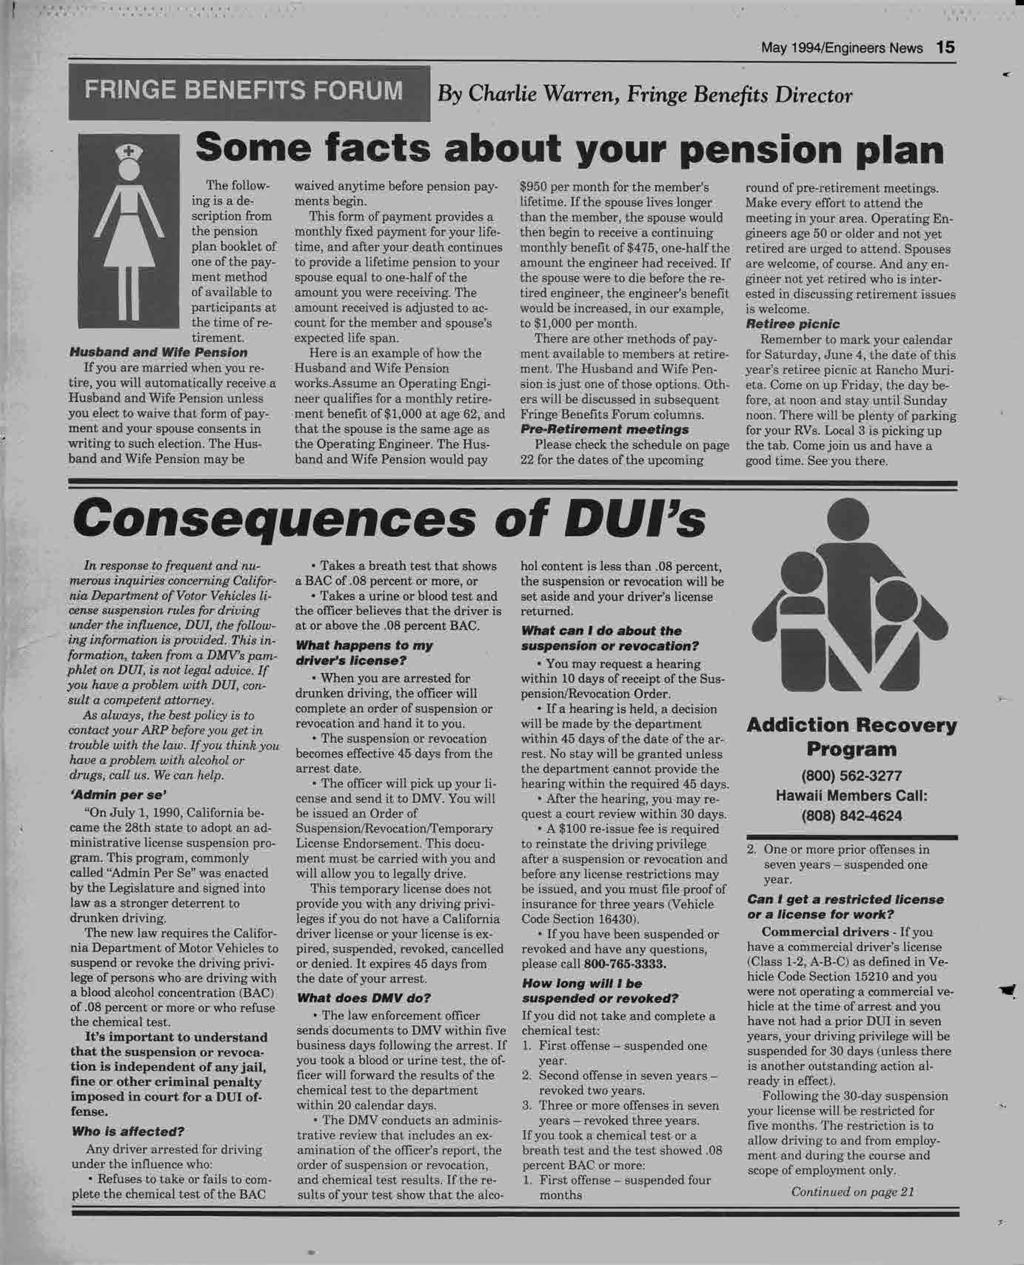 --------- FRINGE BENEFITS FORUM By Charlie Warren, Fringe Benefits Director May 1994/Engineers News 15 H Some facts about your pension plan The follow- waived anytime before pension pay- $950 per